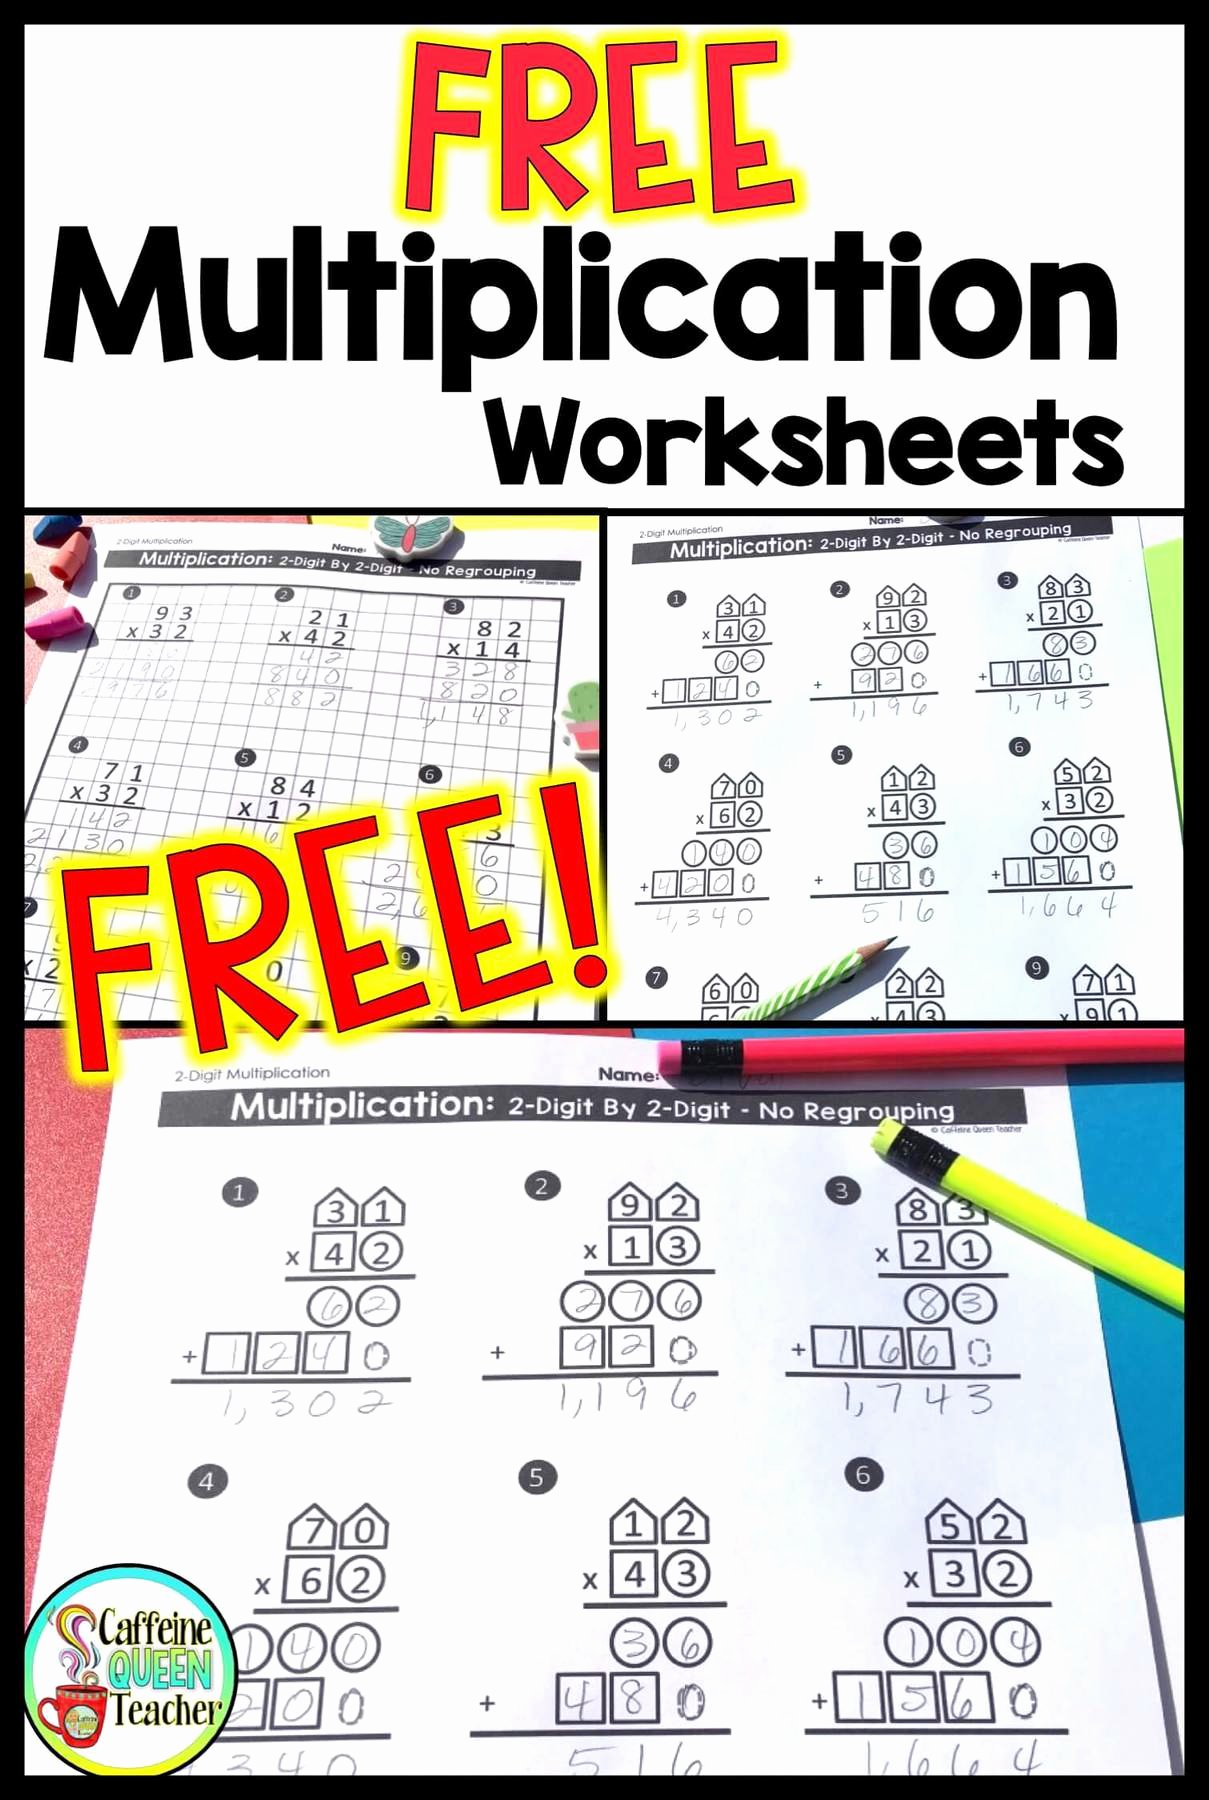 Introducing Multiplication Worksheets Best Of 2 Digit Multiplication Worksheets Differentiated Caffeine